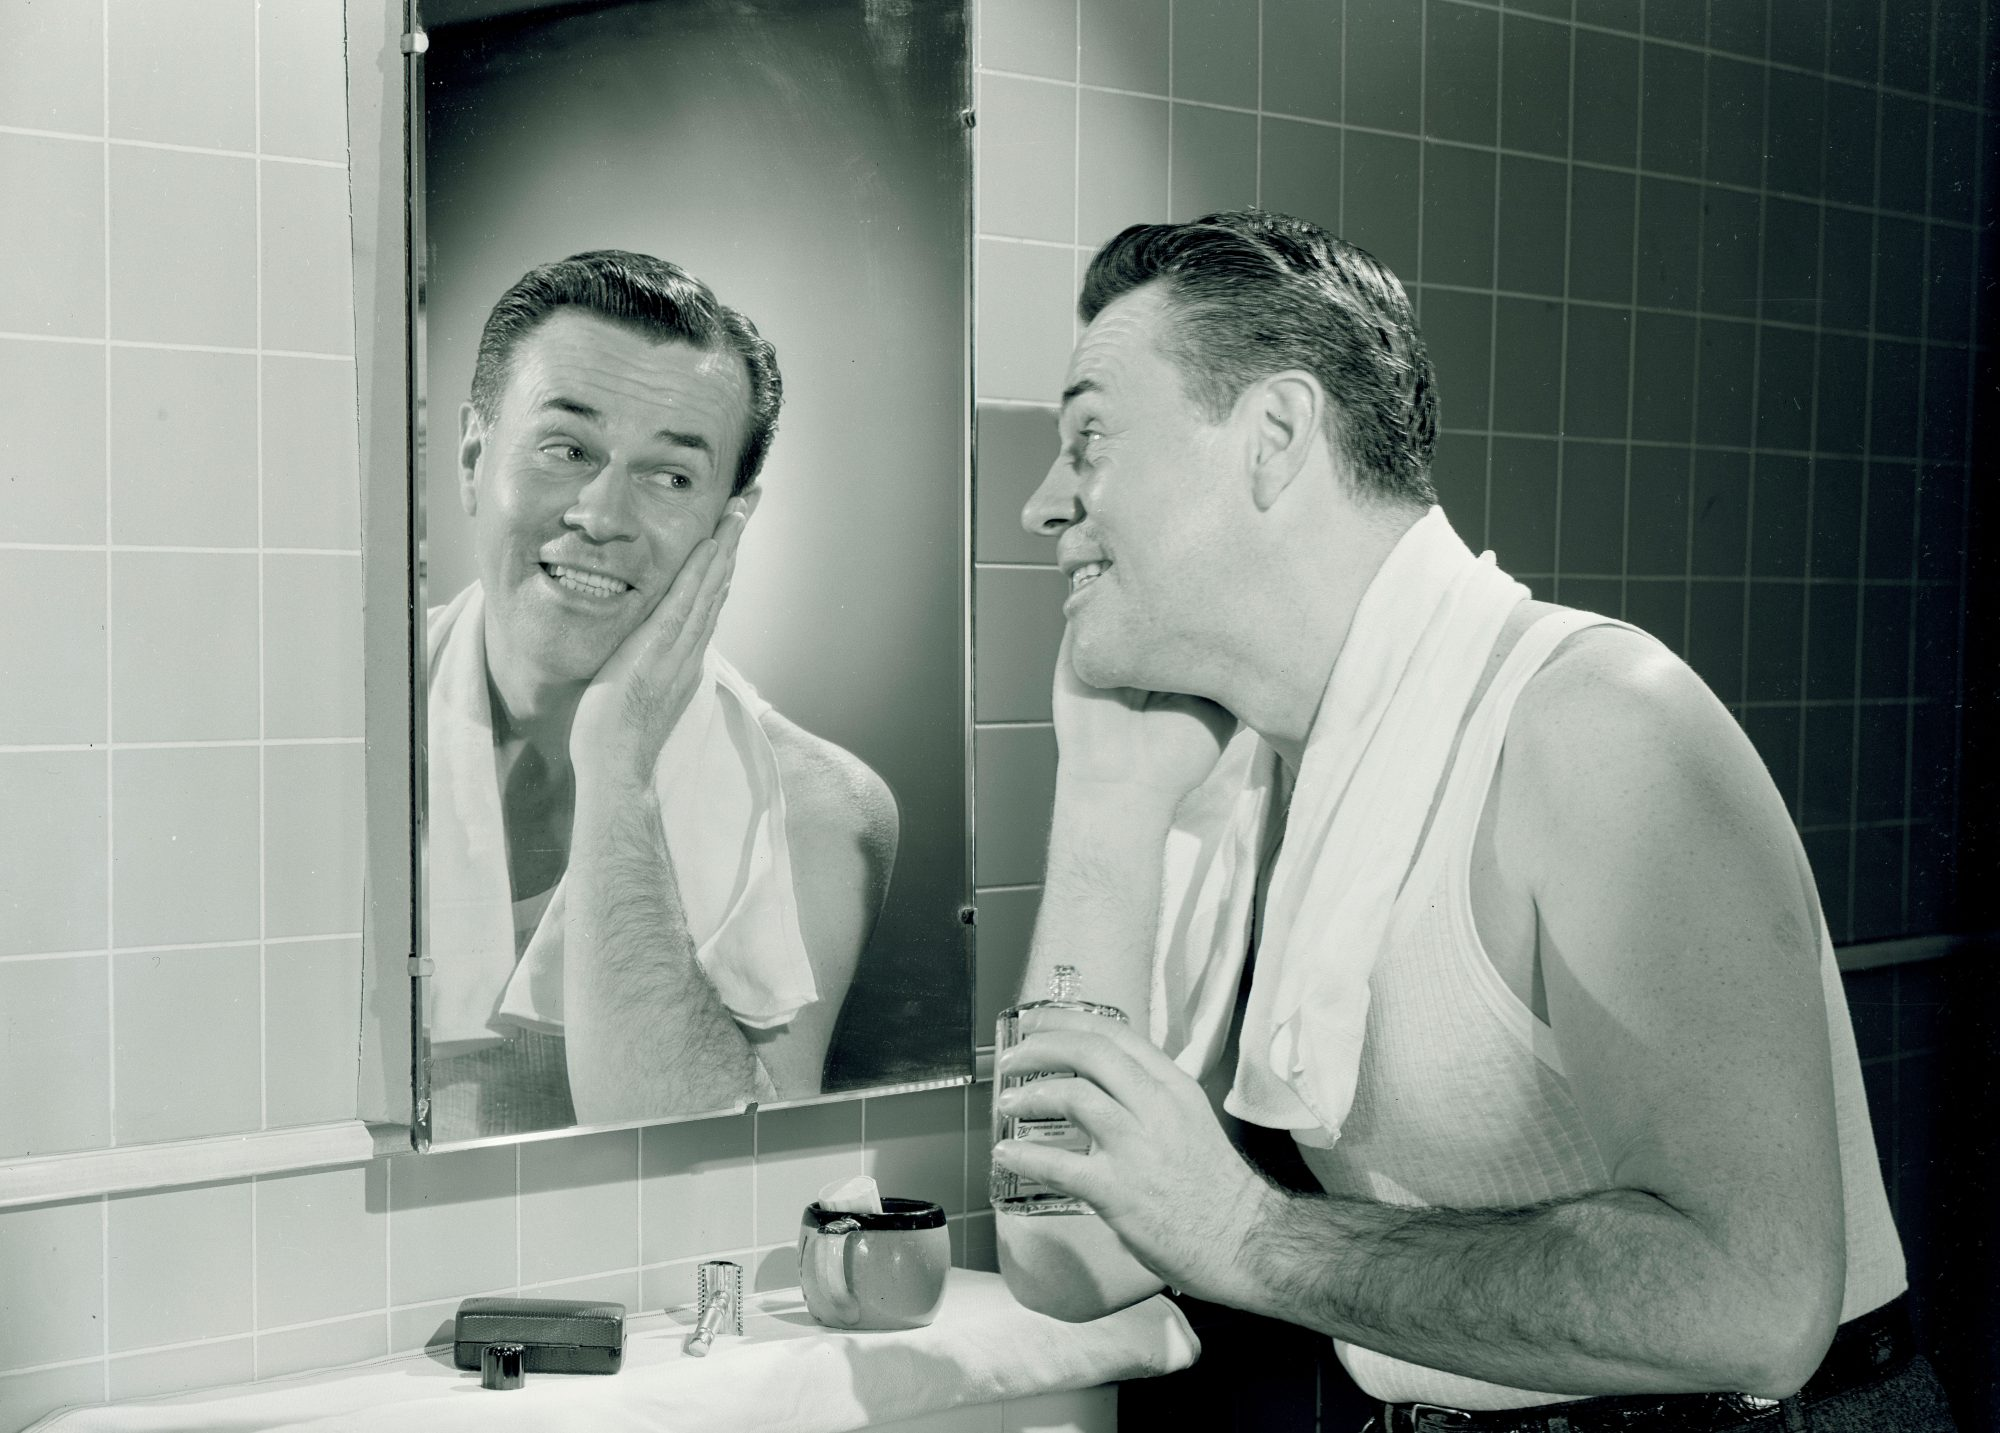 Man Putting on Aftershave